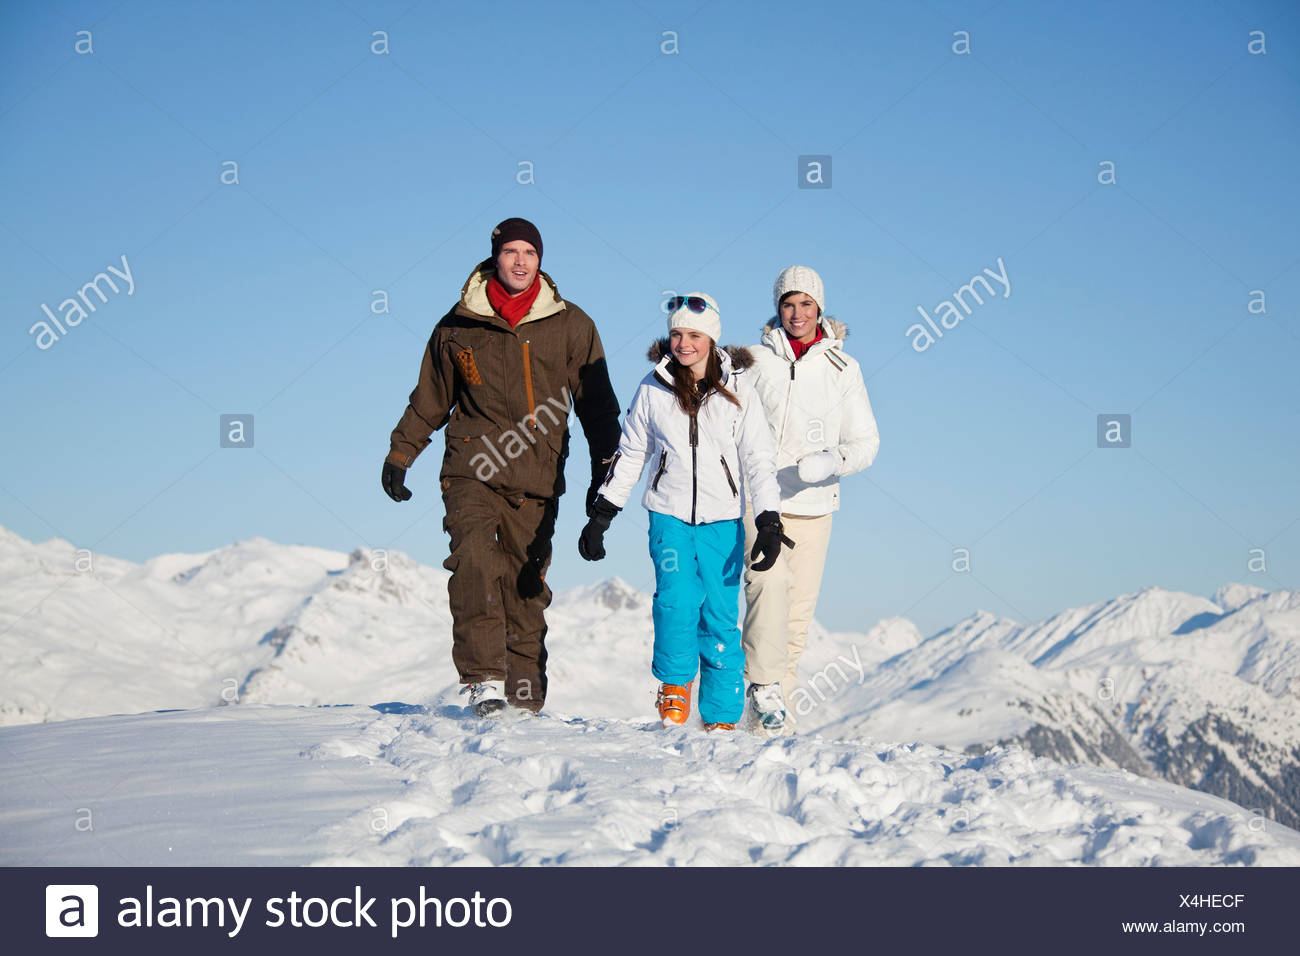 Couple and daughter in ski wear walking in snow - Stock Image